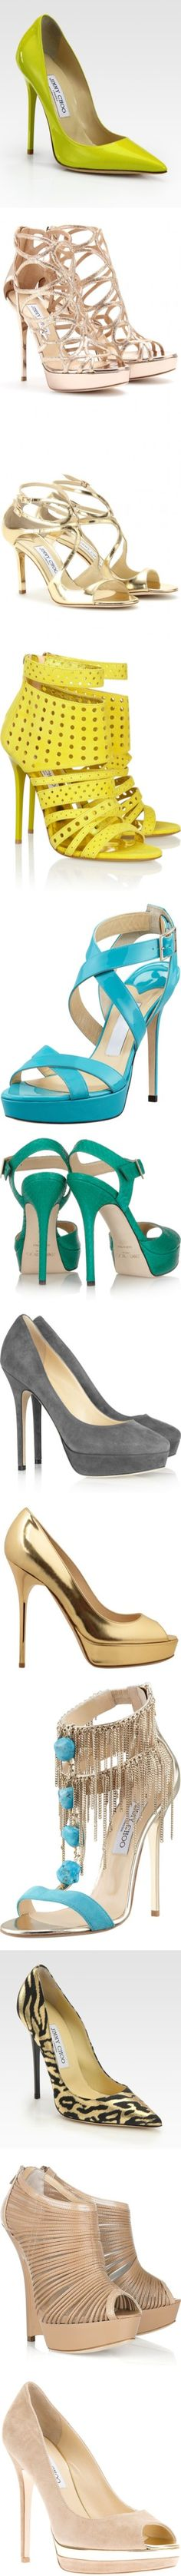 """""""Jimmy Choo Heels/Pumps"""" by hott-cold1 ❤ liked on Polyvore"""